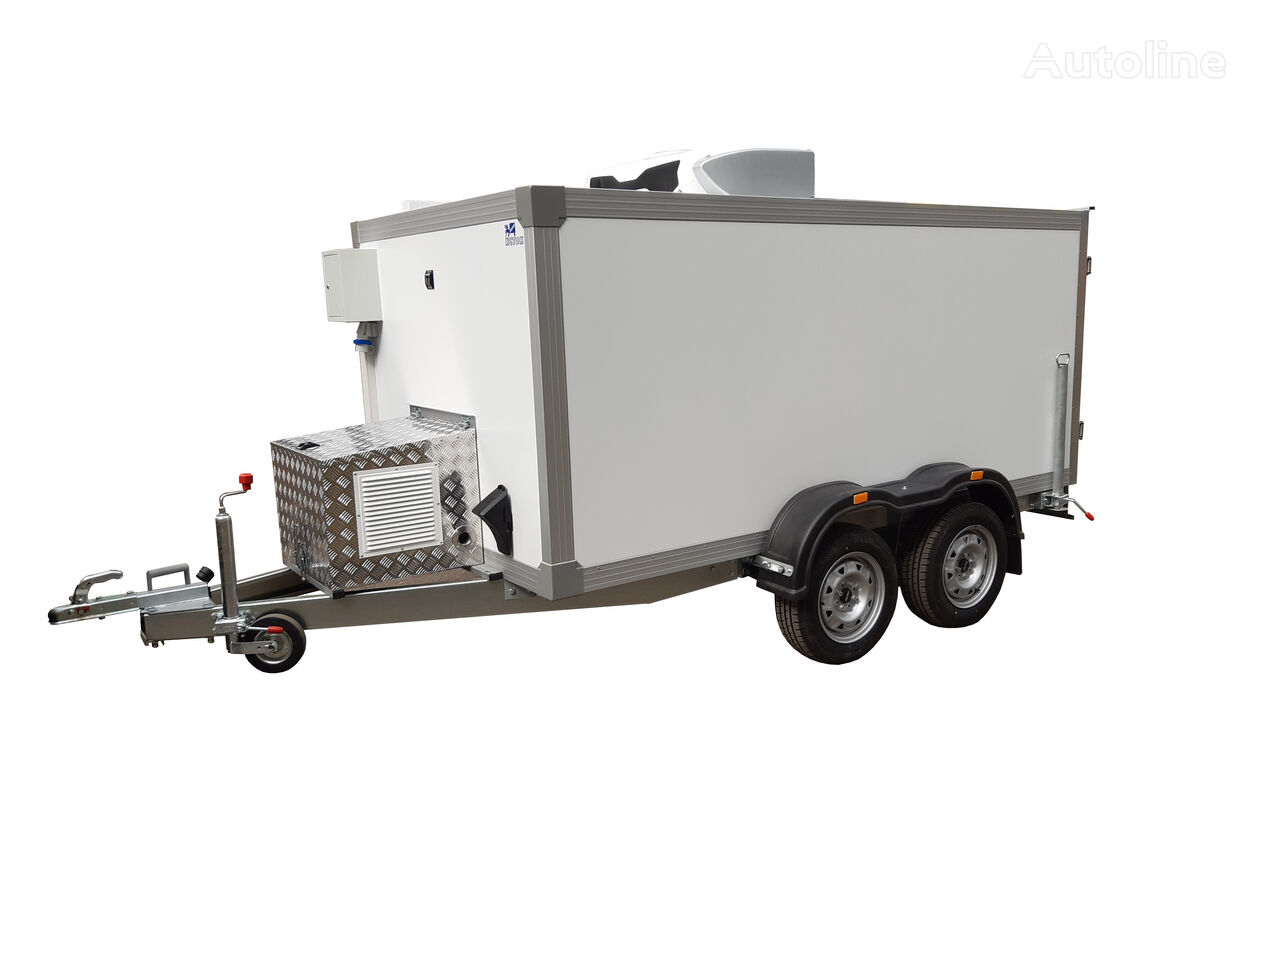 new ISTOK 3792T2 refrigerated trailer